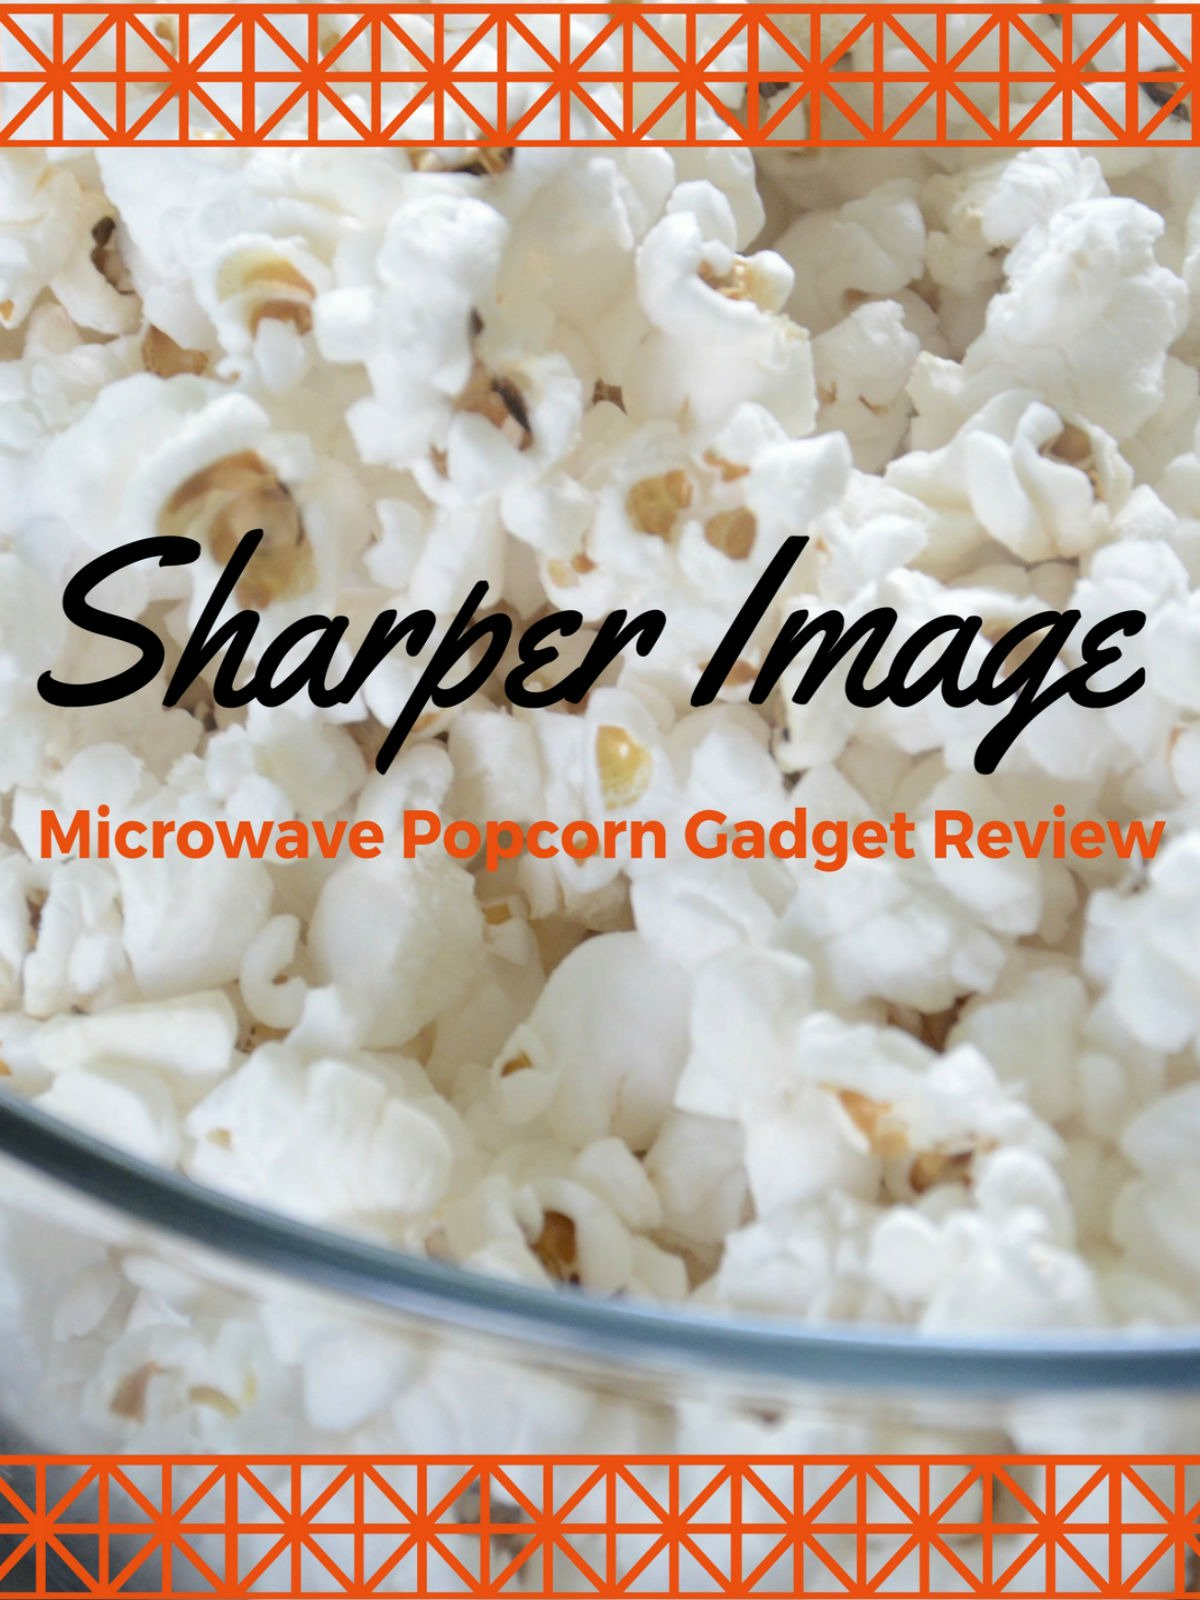 Review: Sharper Image Microwave Popcorn Gadget Review